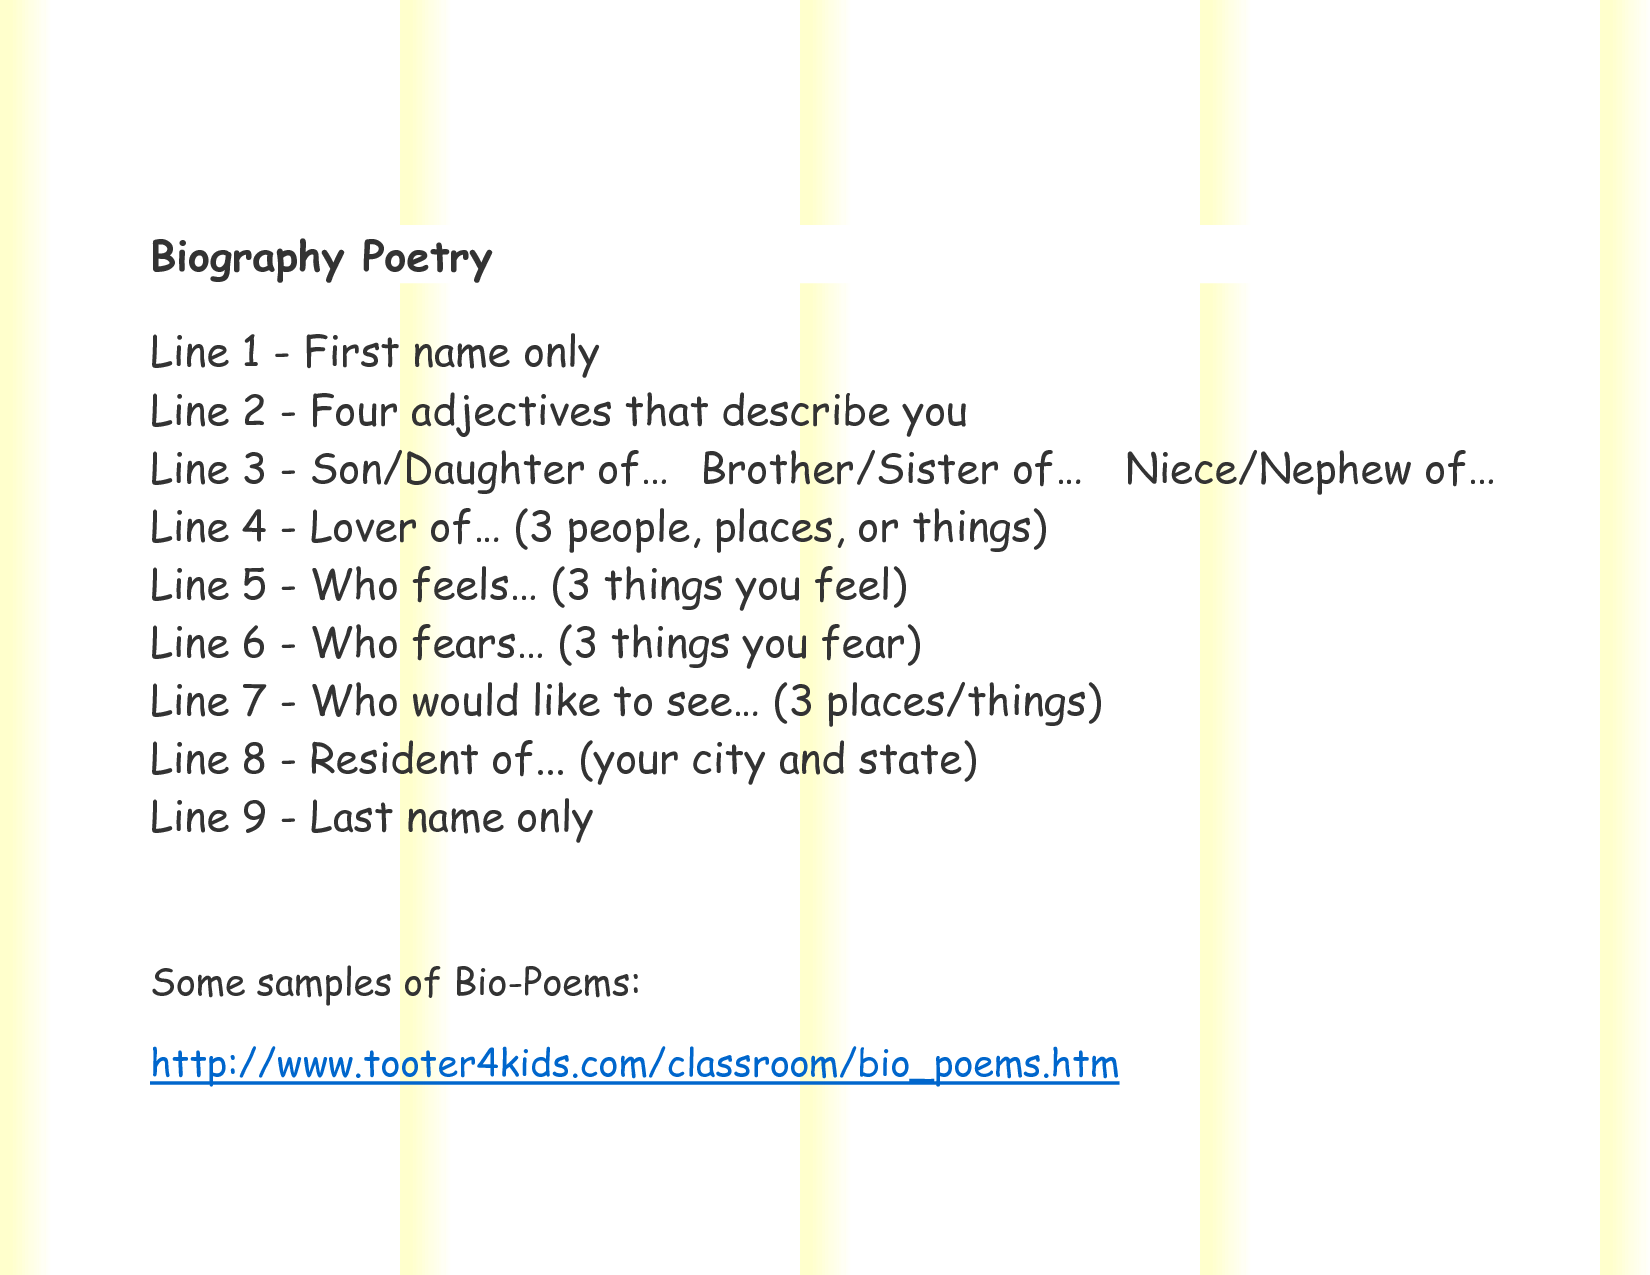 Biographical Poems